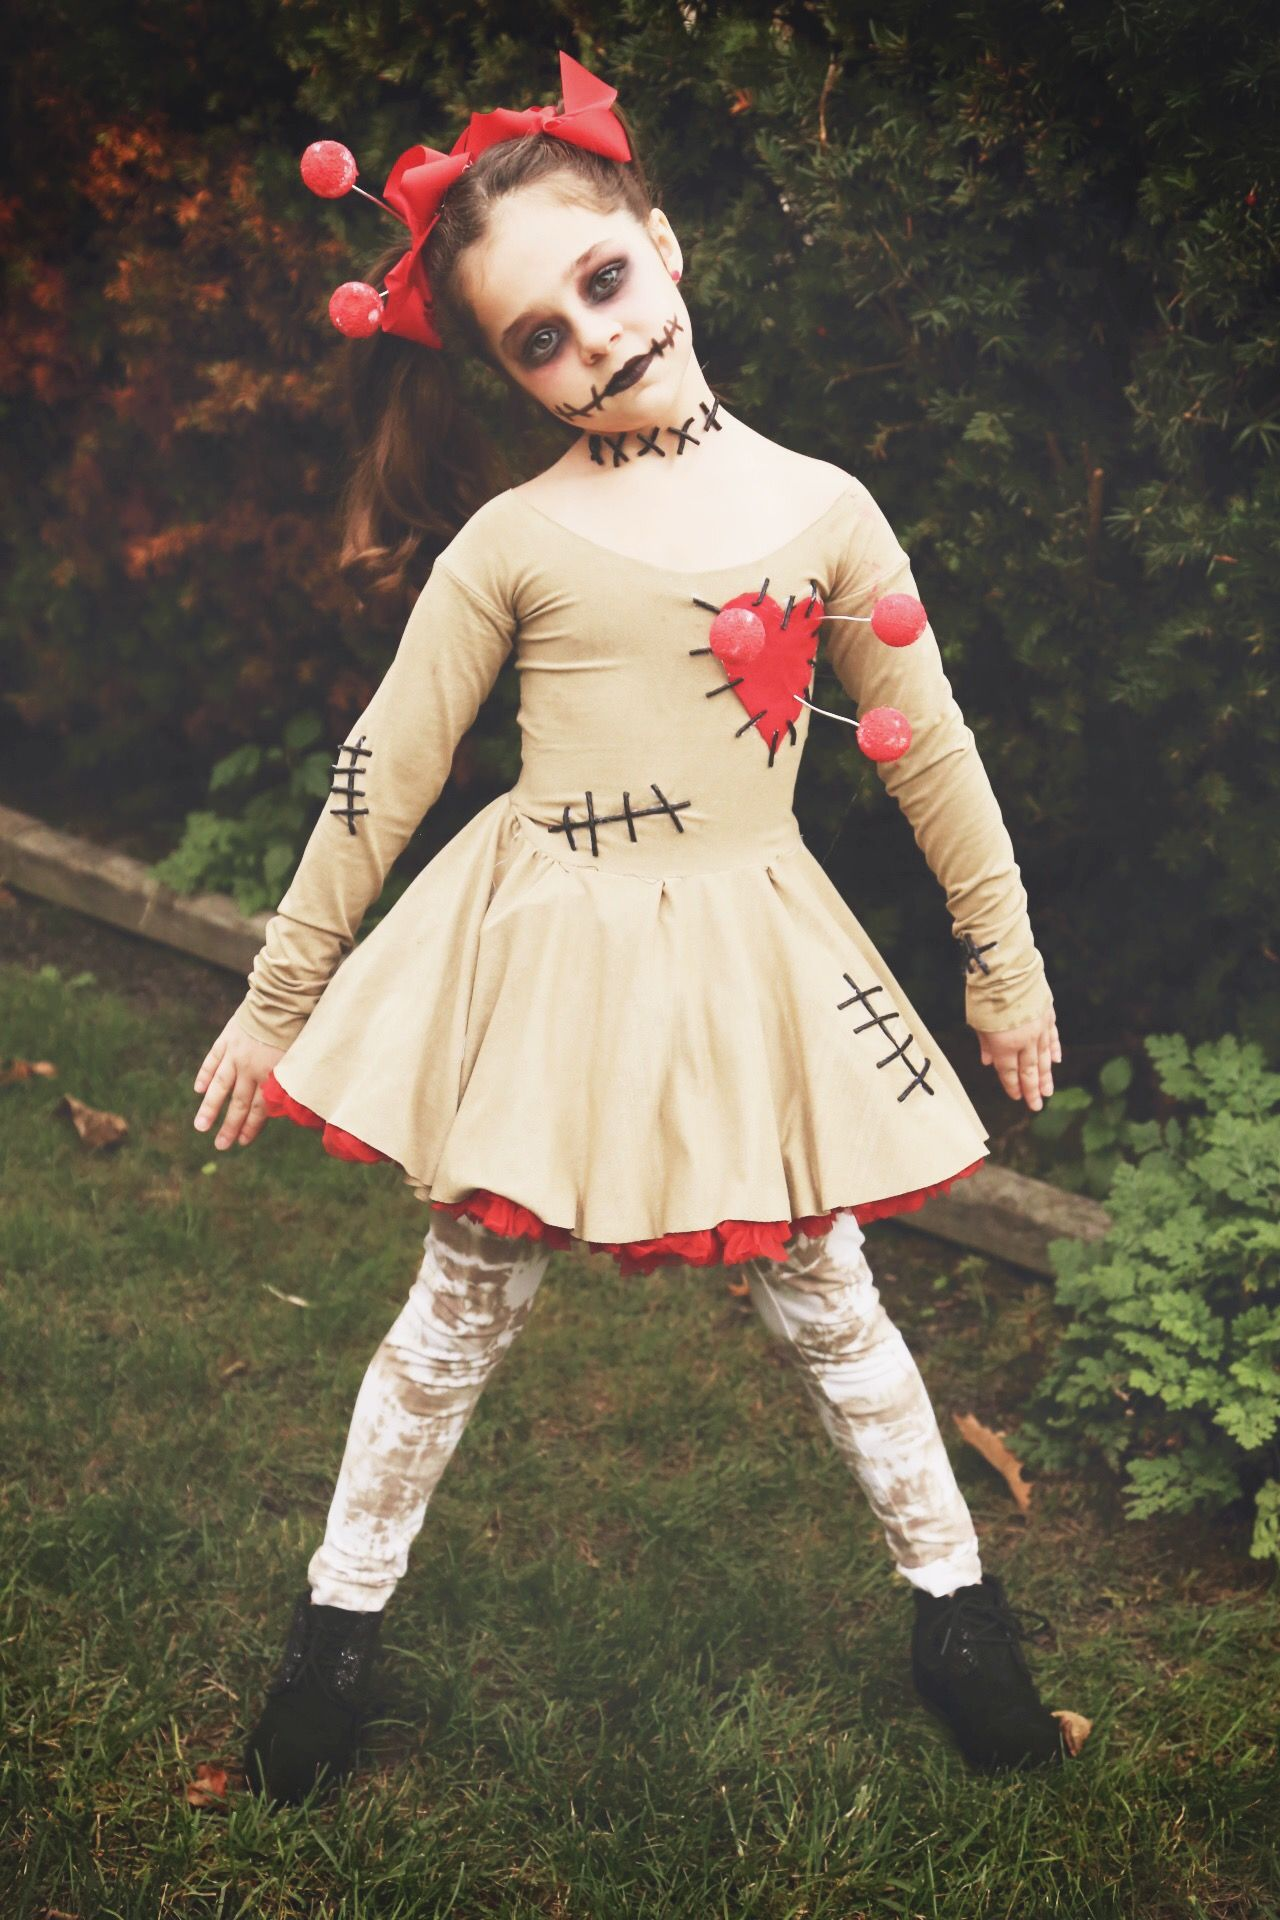 Superb Kids Voodoo Doll Costume. DIY